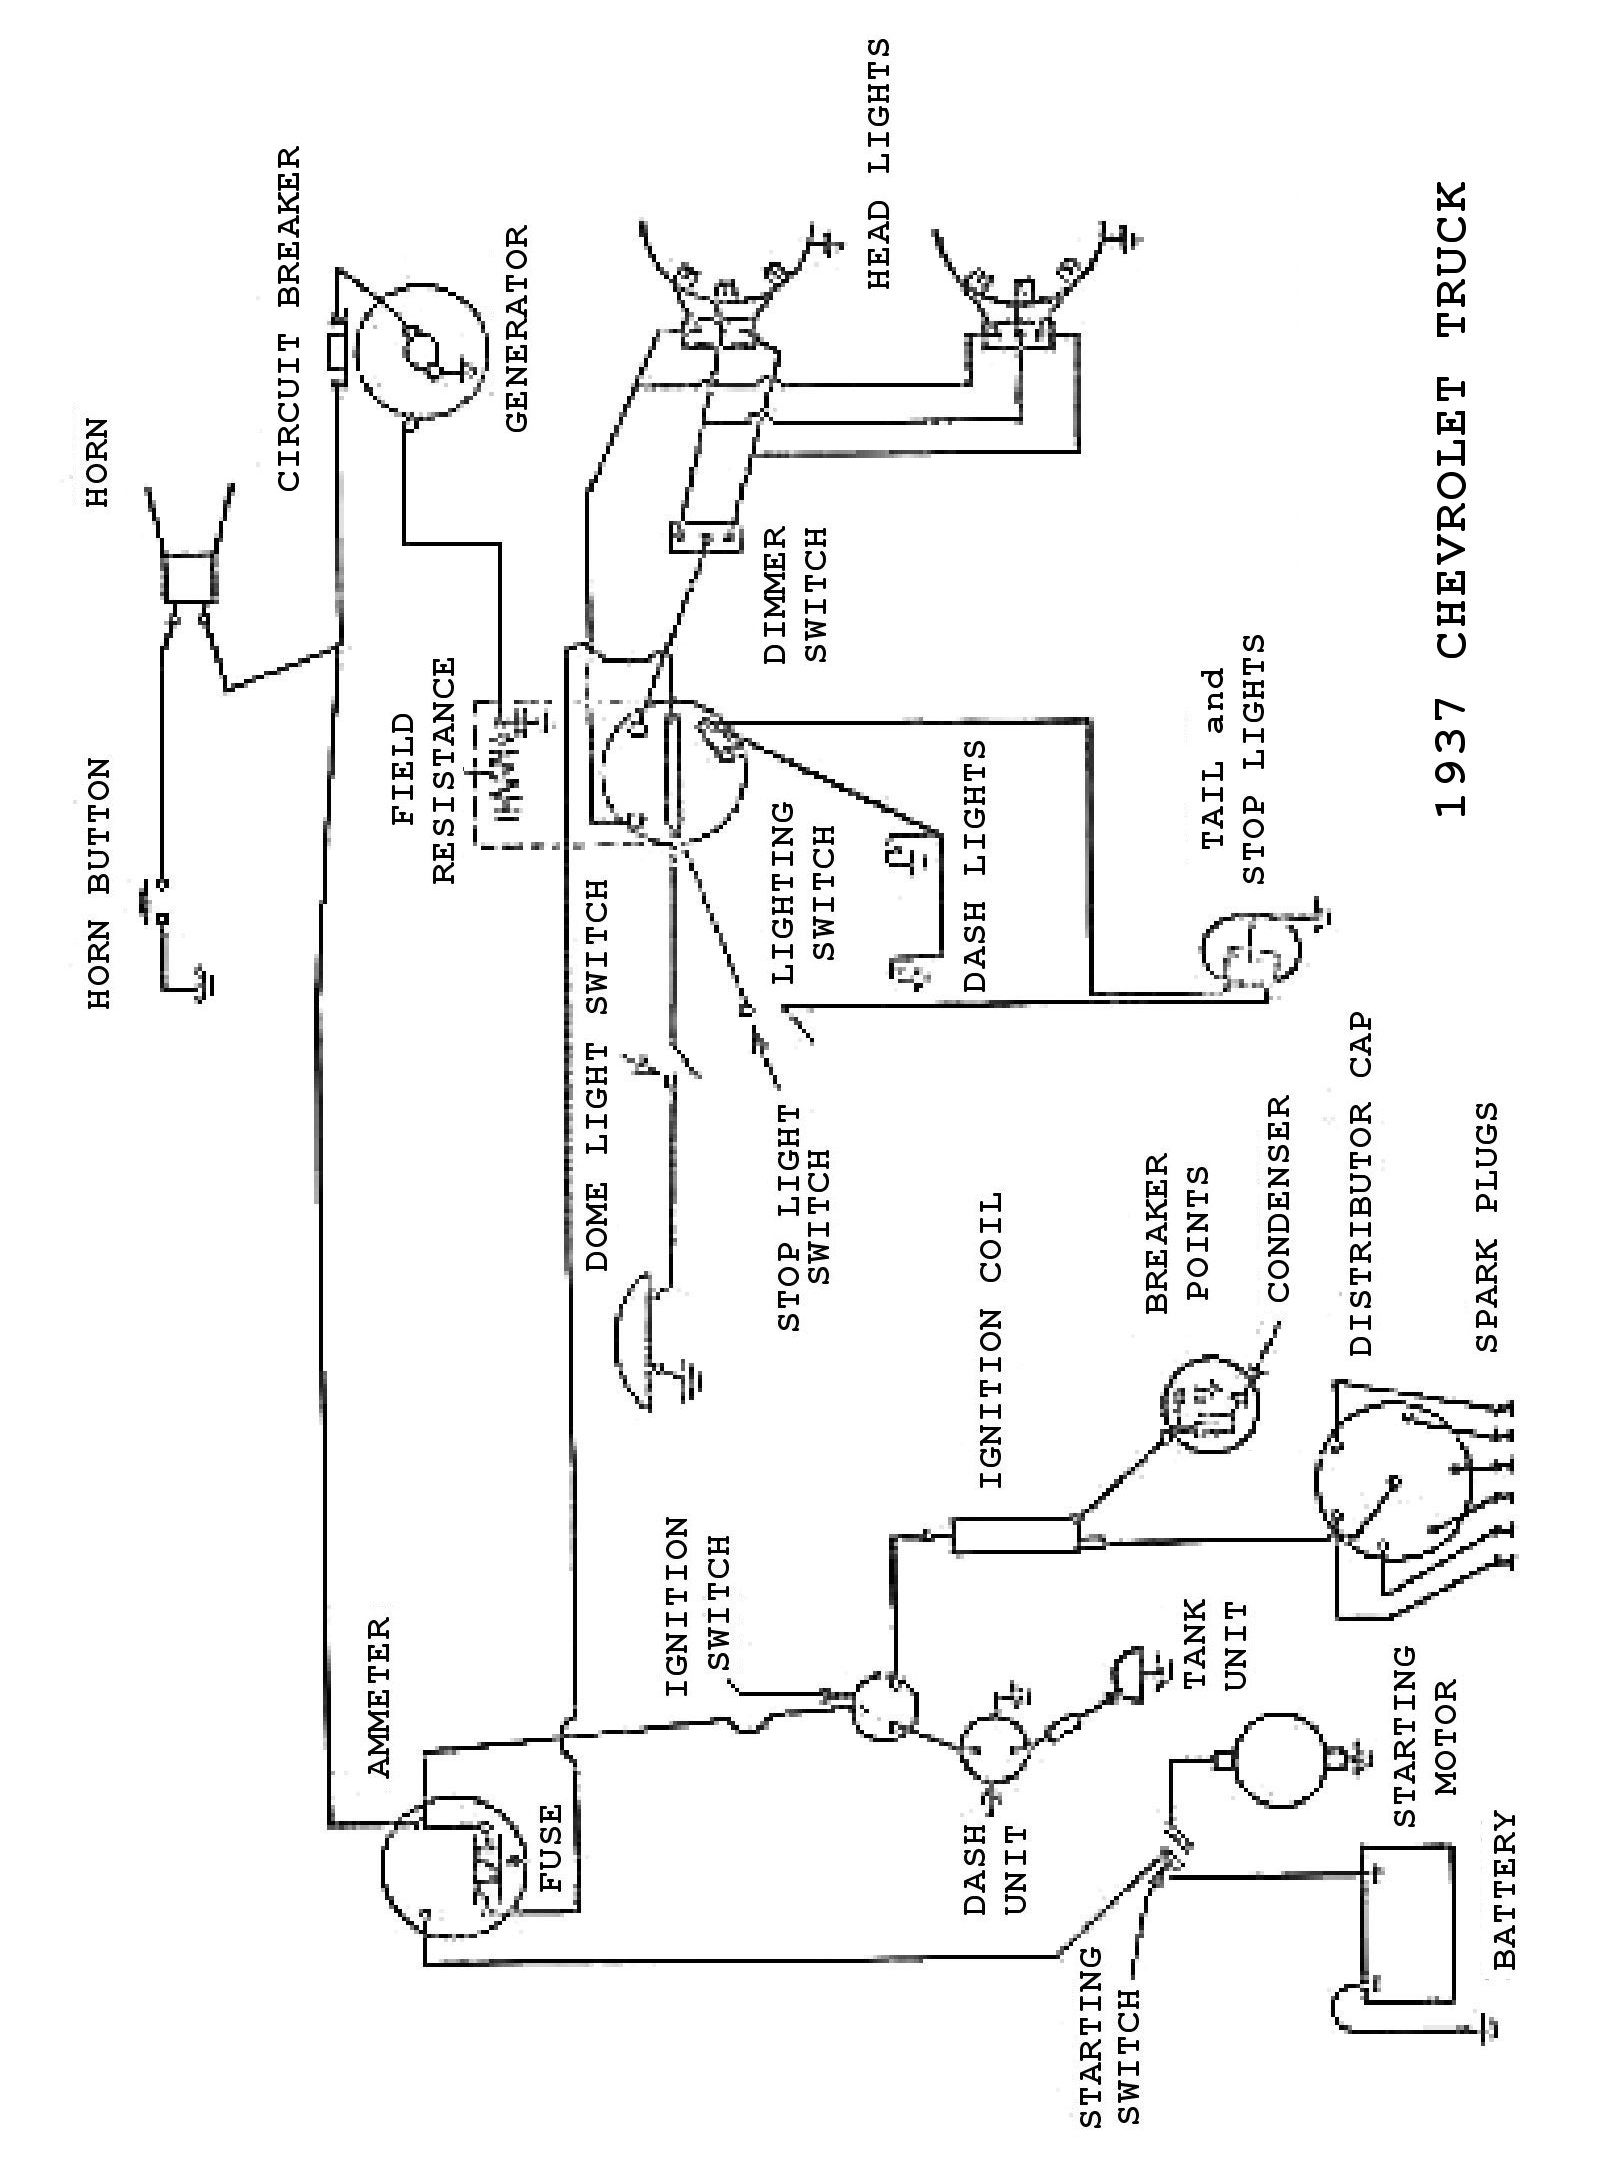 wiring harness in cars with 1937 Chevy 1 2 Ton Truck Barn on Help Locating Shift Solenoid Please 2704856 moreover T22903794 89 ford ranger push button 4x4 will not as well Lb7 Cooling System Diagram moreover 5f7zc 1957 Chevy Light Switch Power One Spade Tail Lights as well Discussion T2950 ds616402.